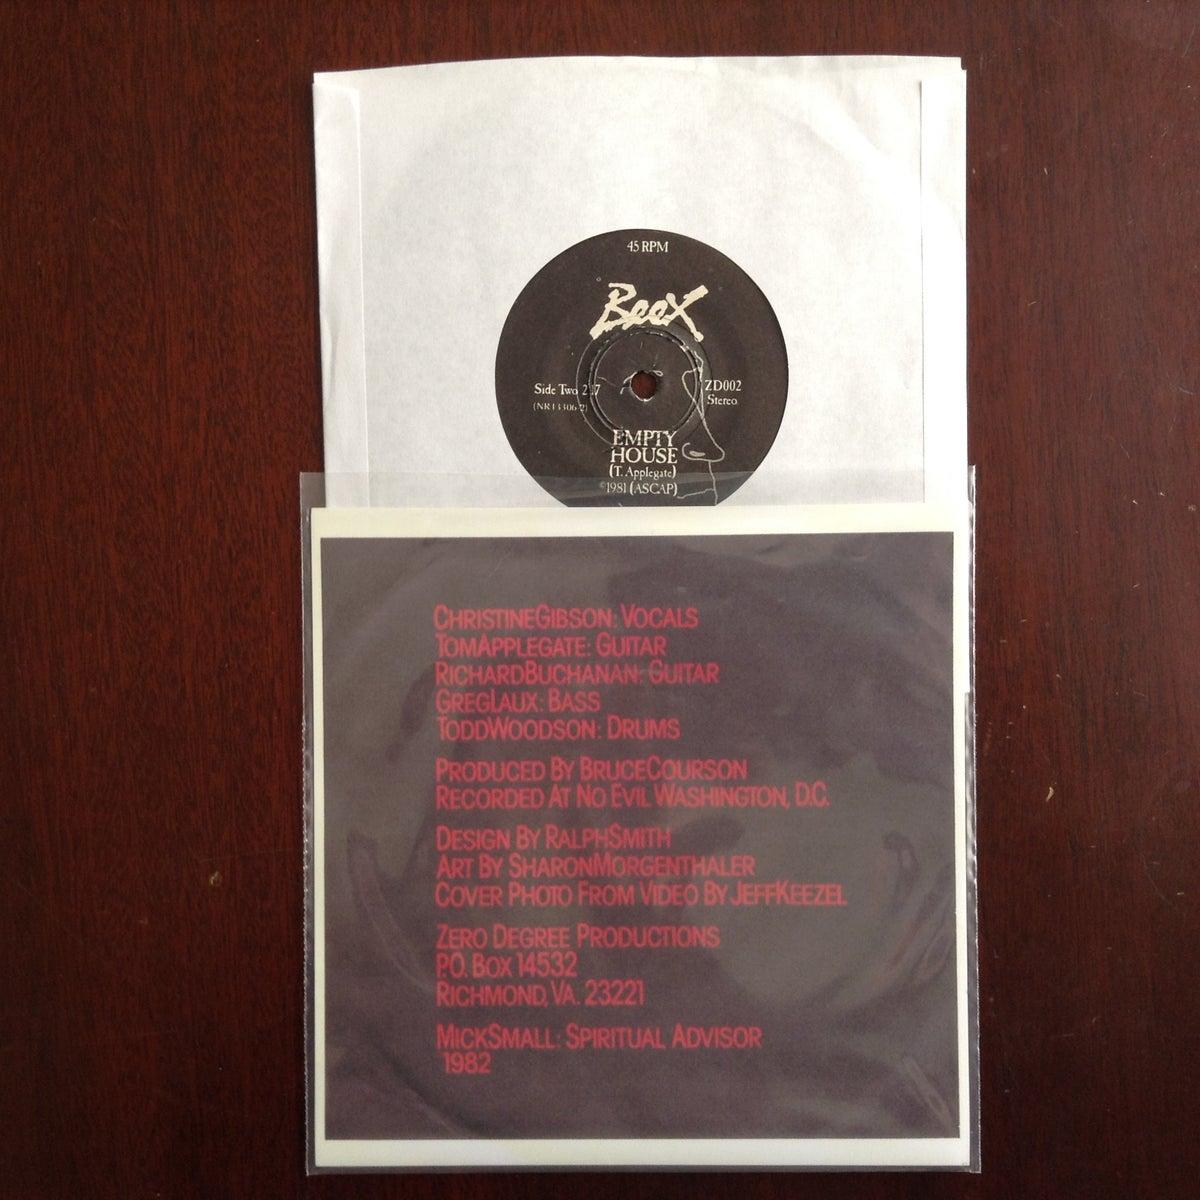 """Image of Butch/Empty House 7"""" 45 record 1981 (reprinted cover)"""